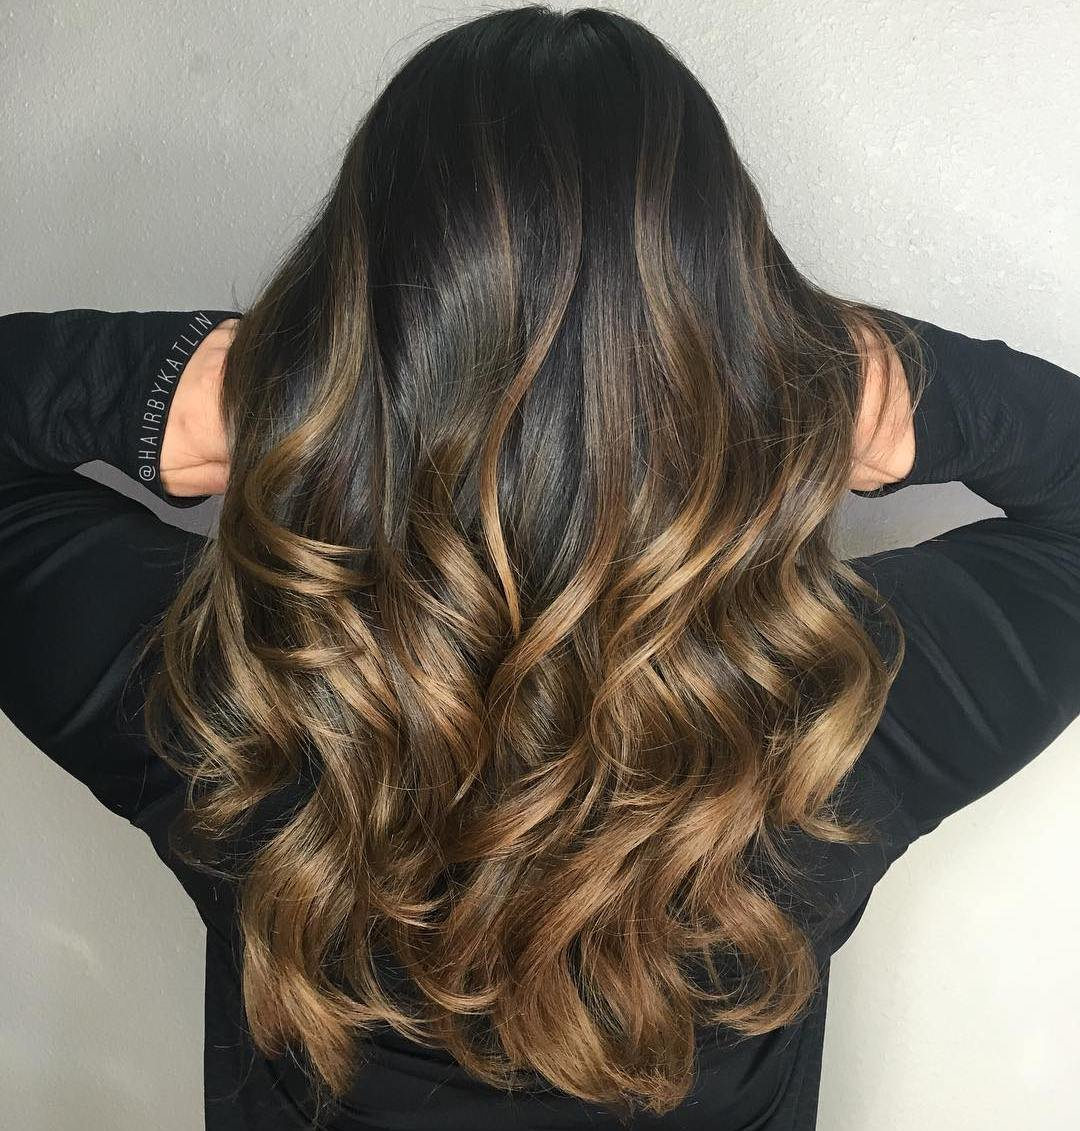 Free 60 Best Ombre Hair Color Ideas For Blond Brown Red And Wallpaper